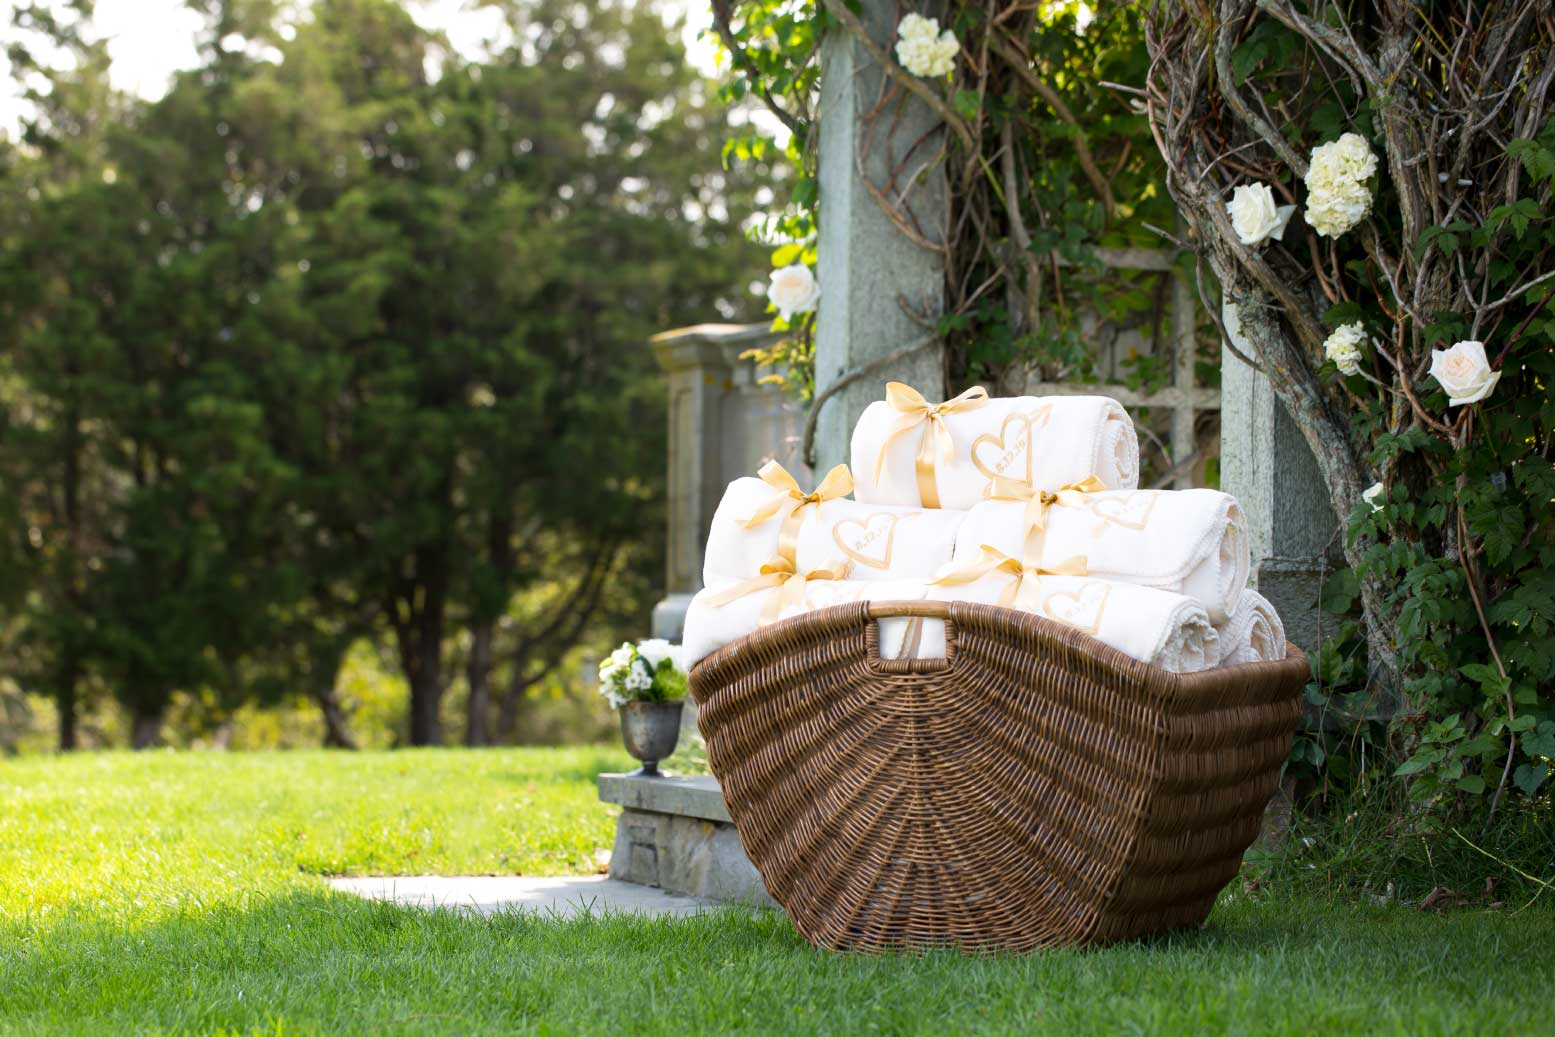 Our luxurious blankets make an elegant wedding favor and the perfect keepsake. Keep your guests warm & cozy.